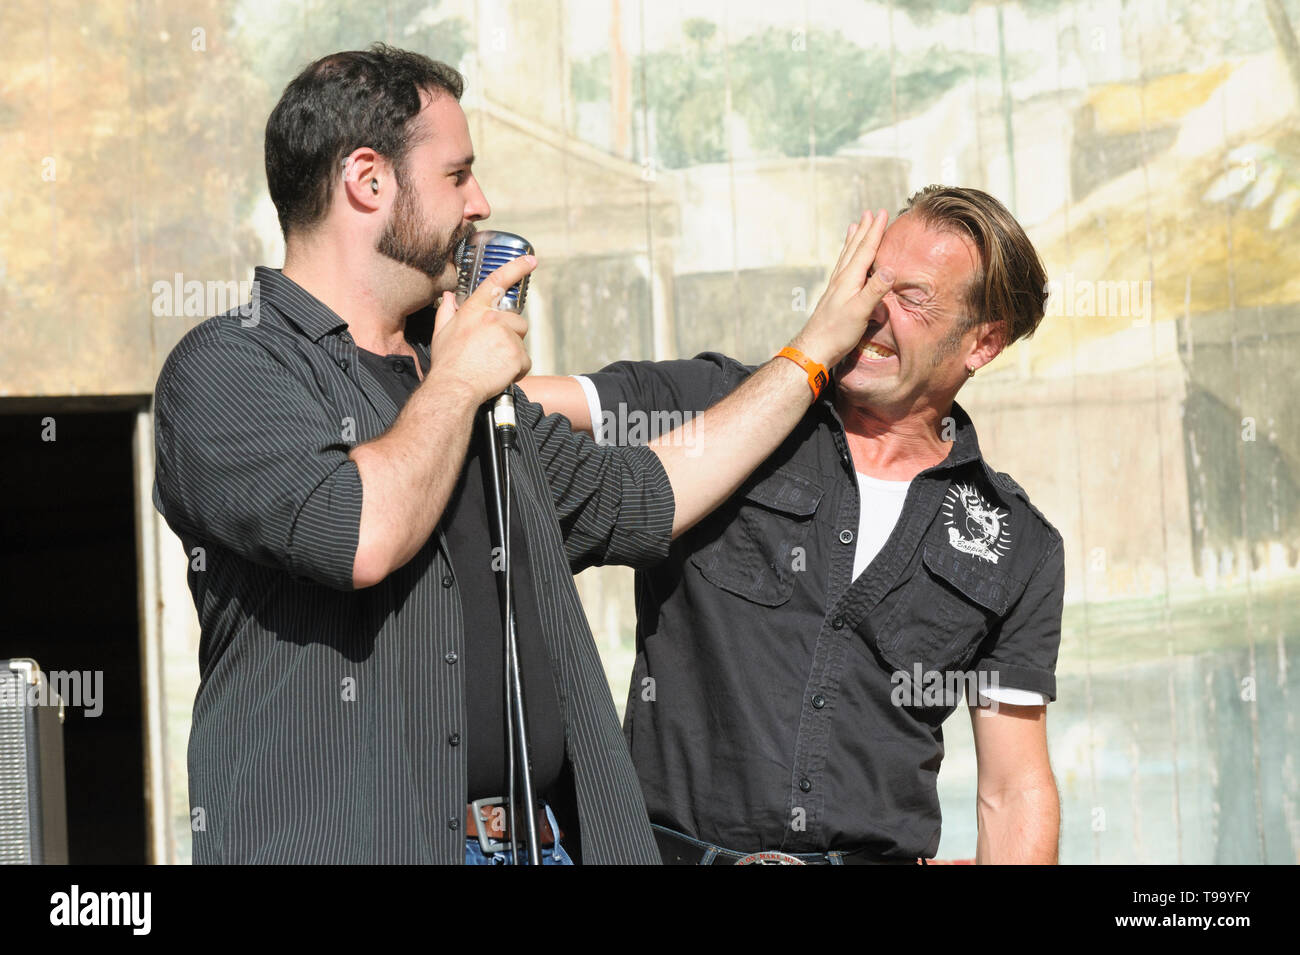 Dirk Hartmann and Golo Sturm performing with Boppin' B at the Larmer Tree Festival, UK. July 19, 2014 - Stock Image